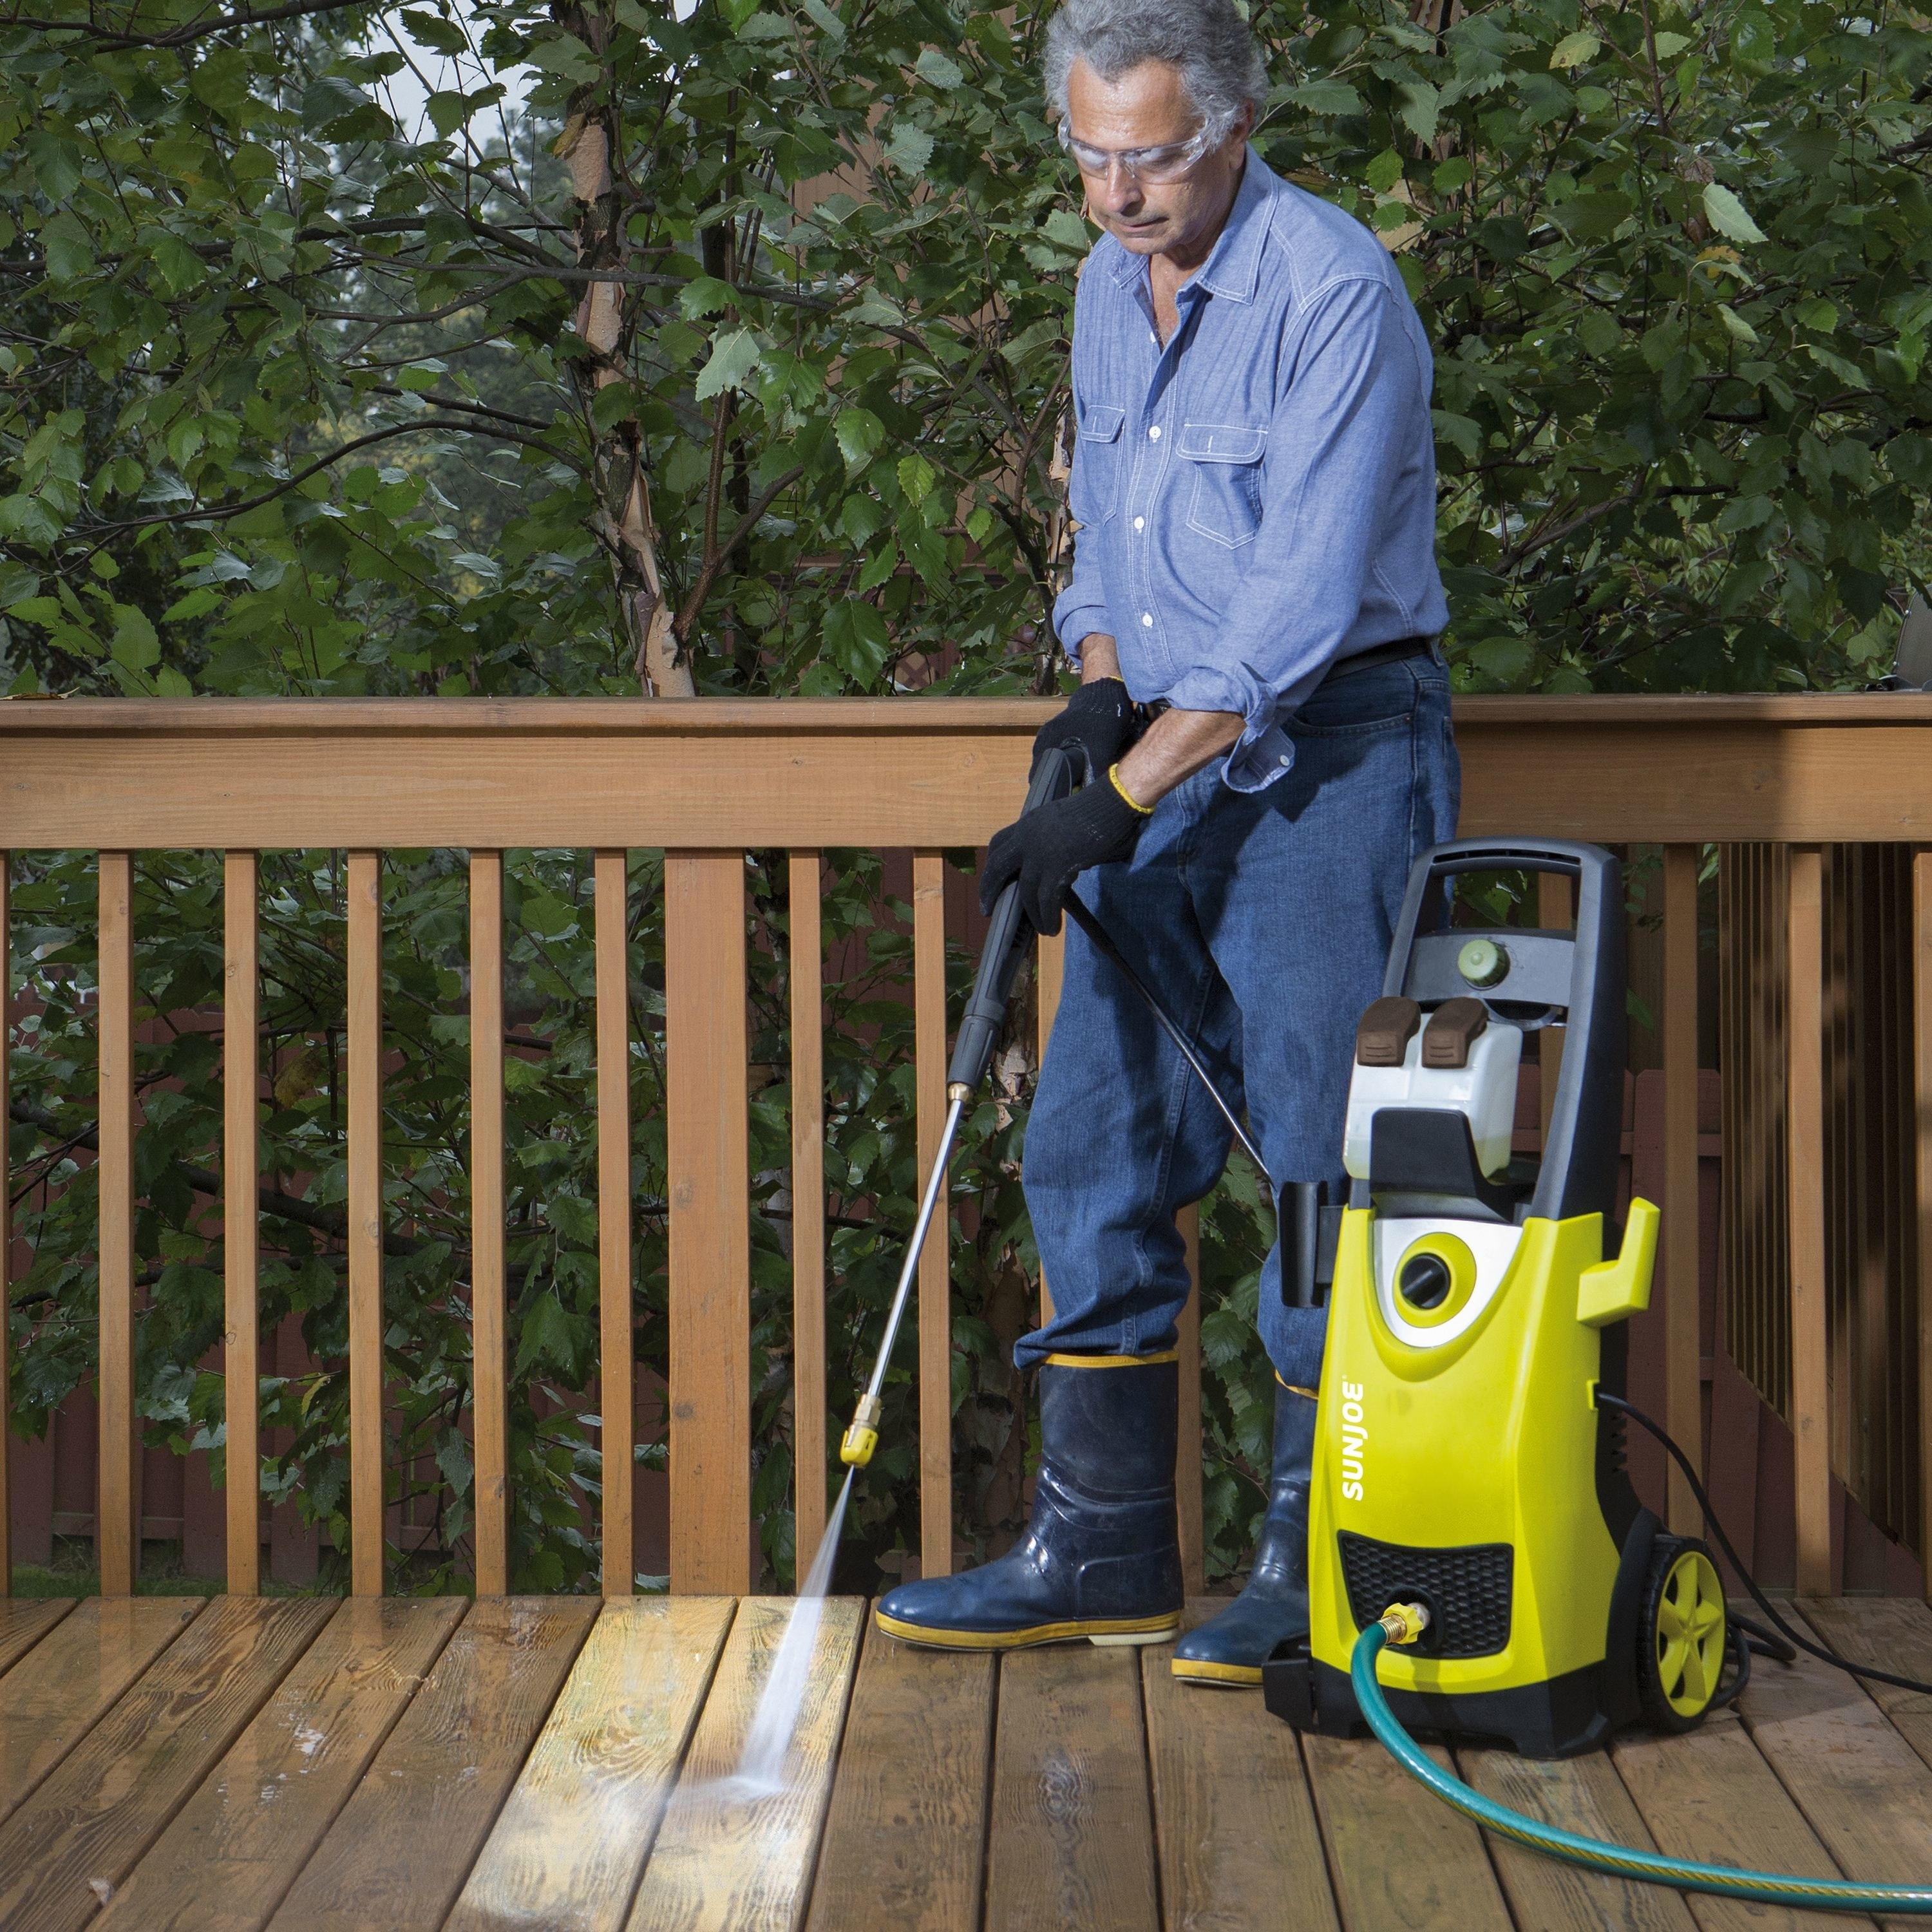 person using a pressure washer to clean the back deck